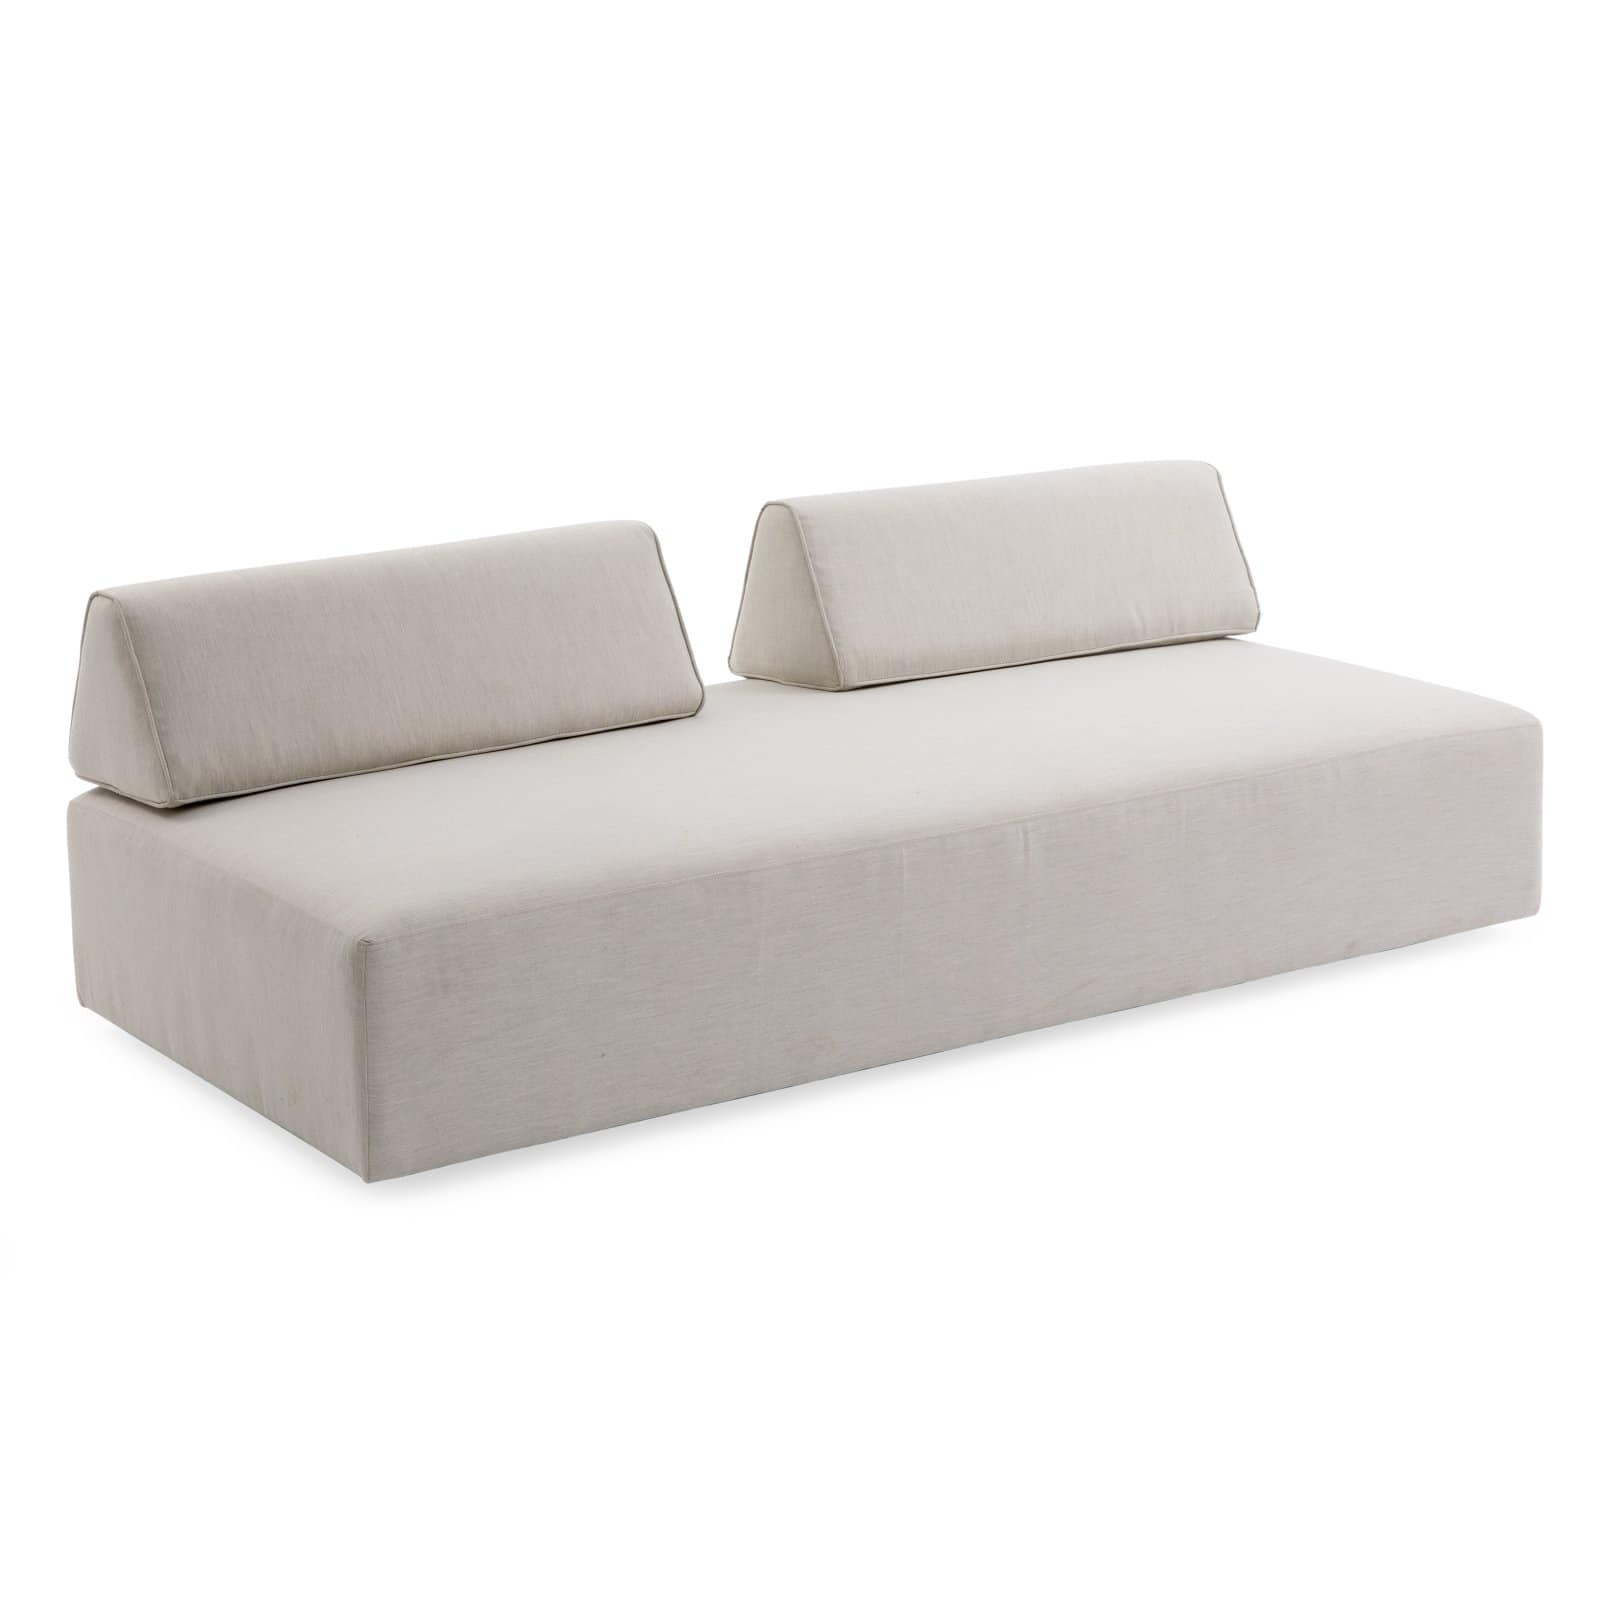 - Belham Living Carlotta Upholstered Loveseat Outdoor Daybed With